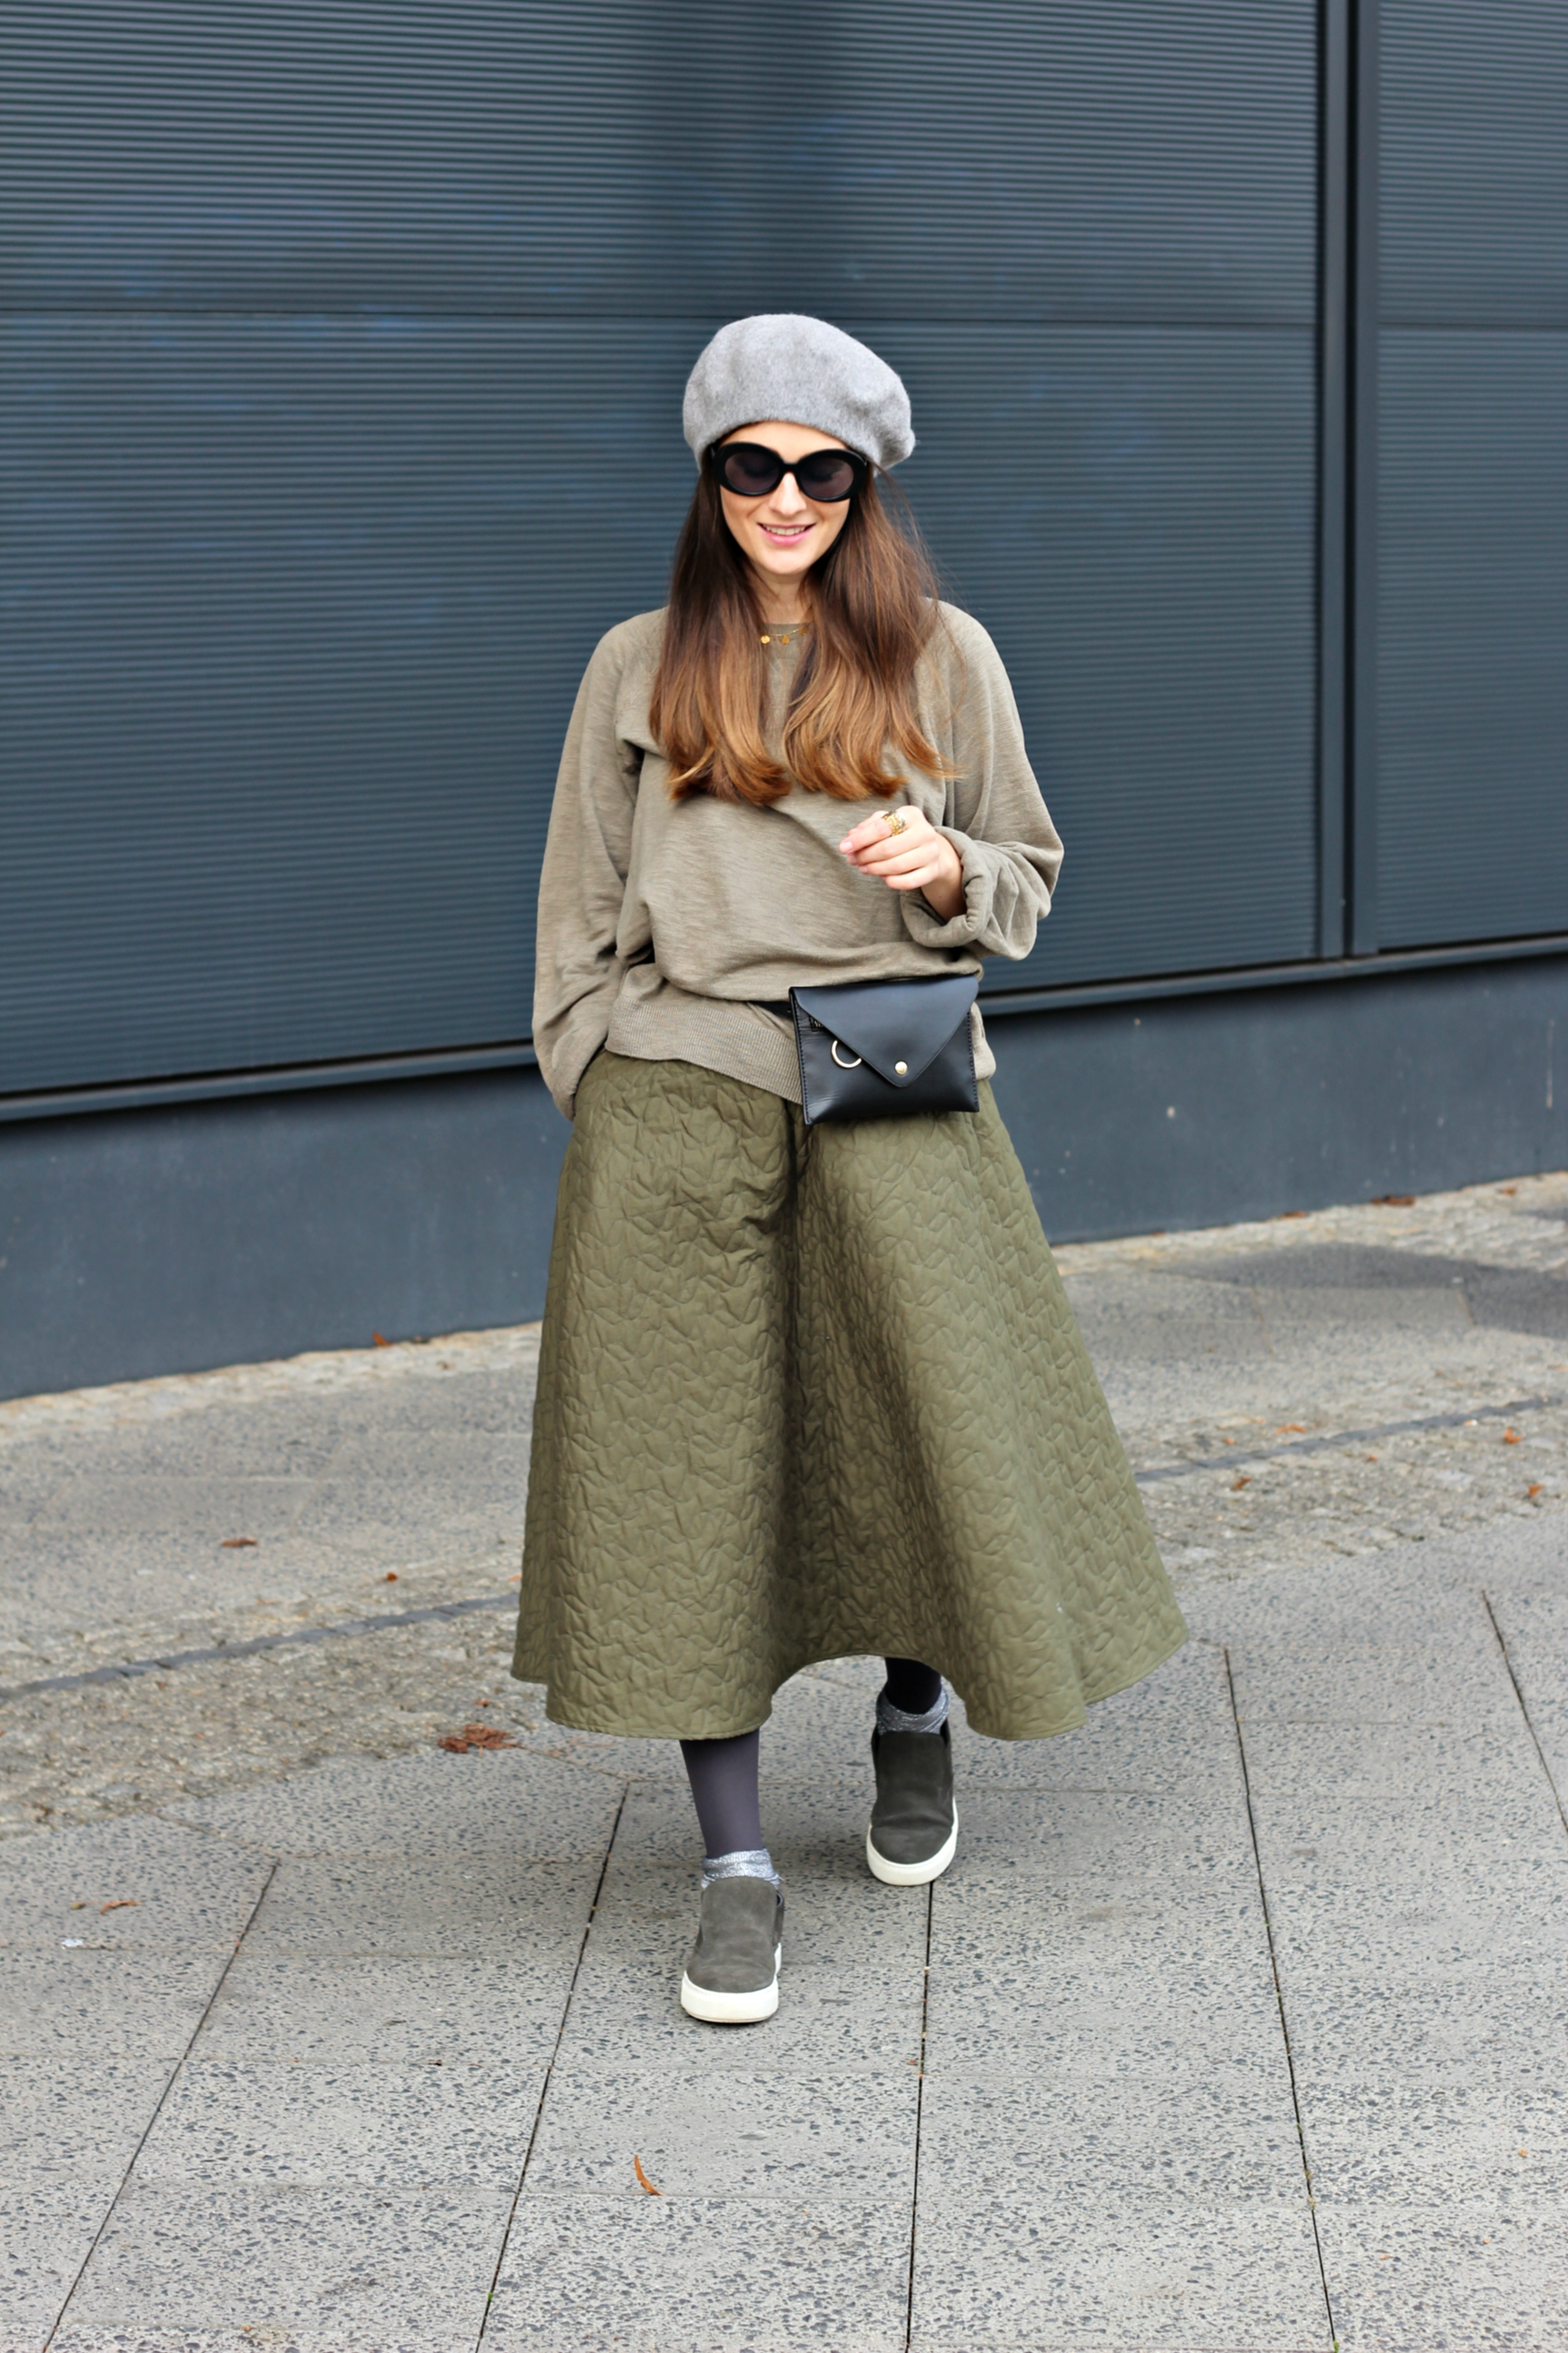 annaporter-shabbies-amsterdam-uniqlo-olive-green-look-casual-skirt-1